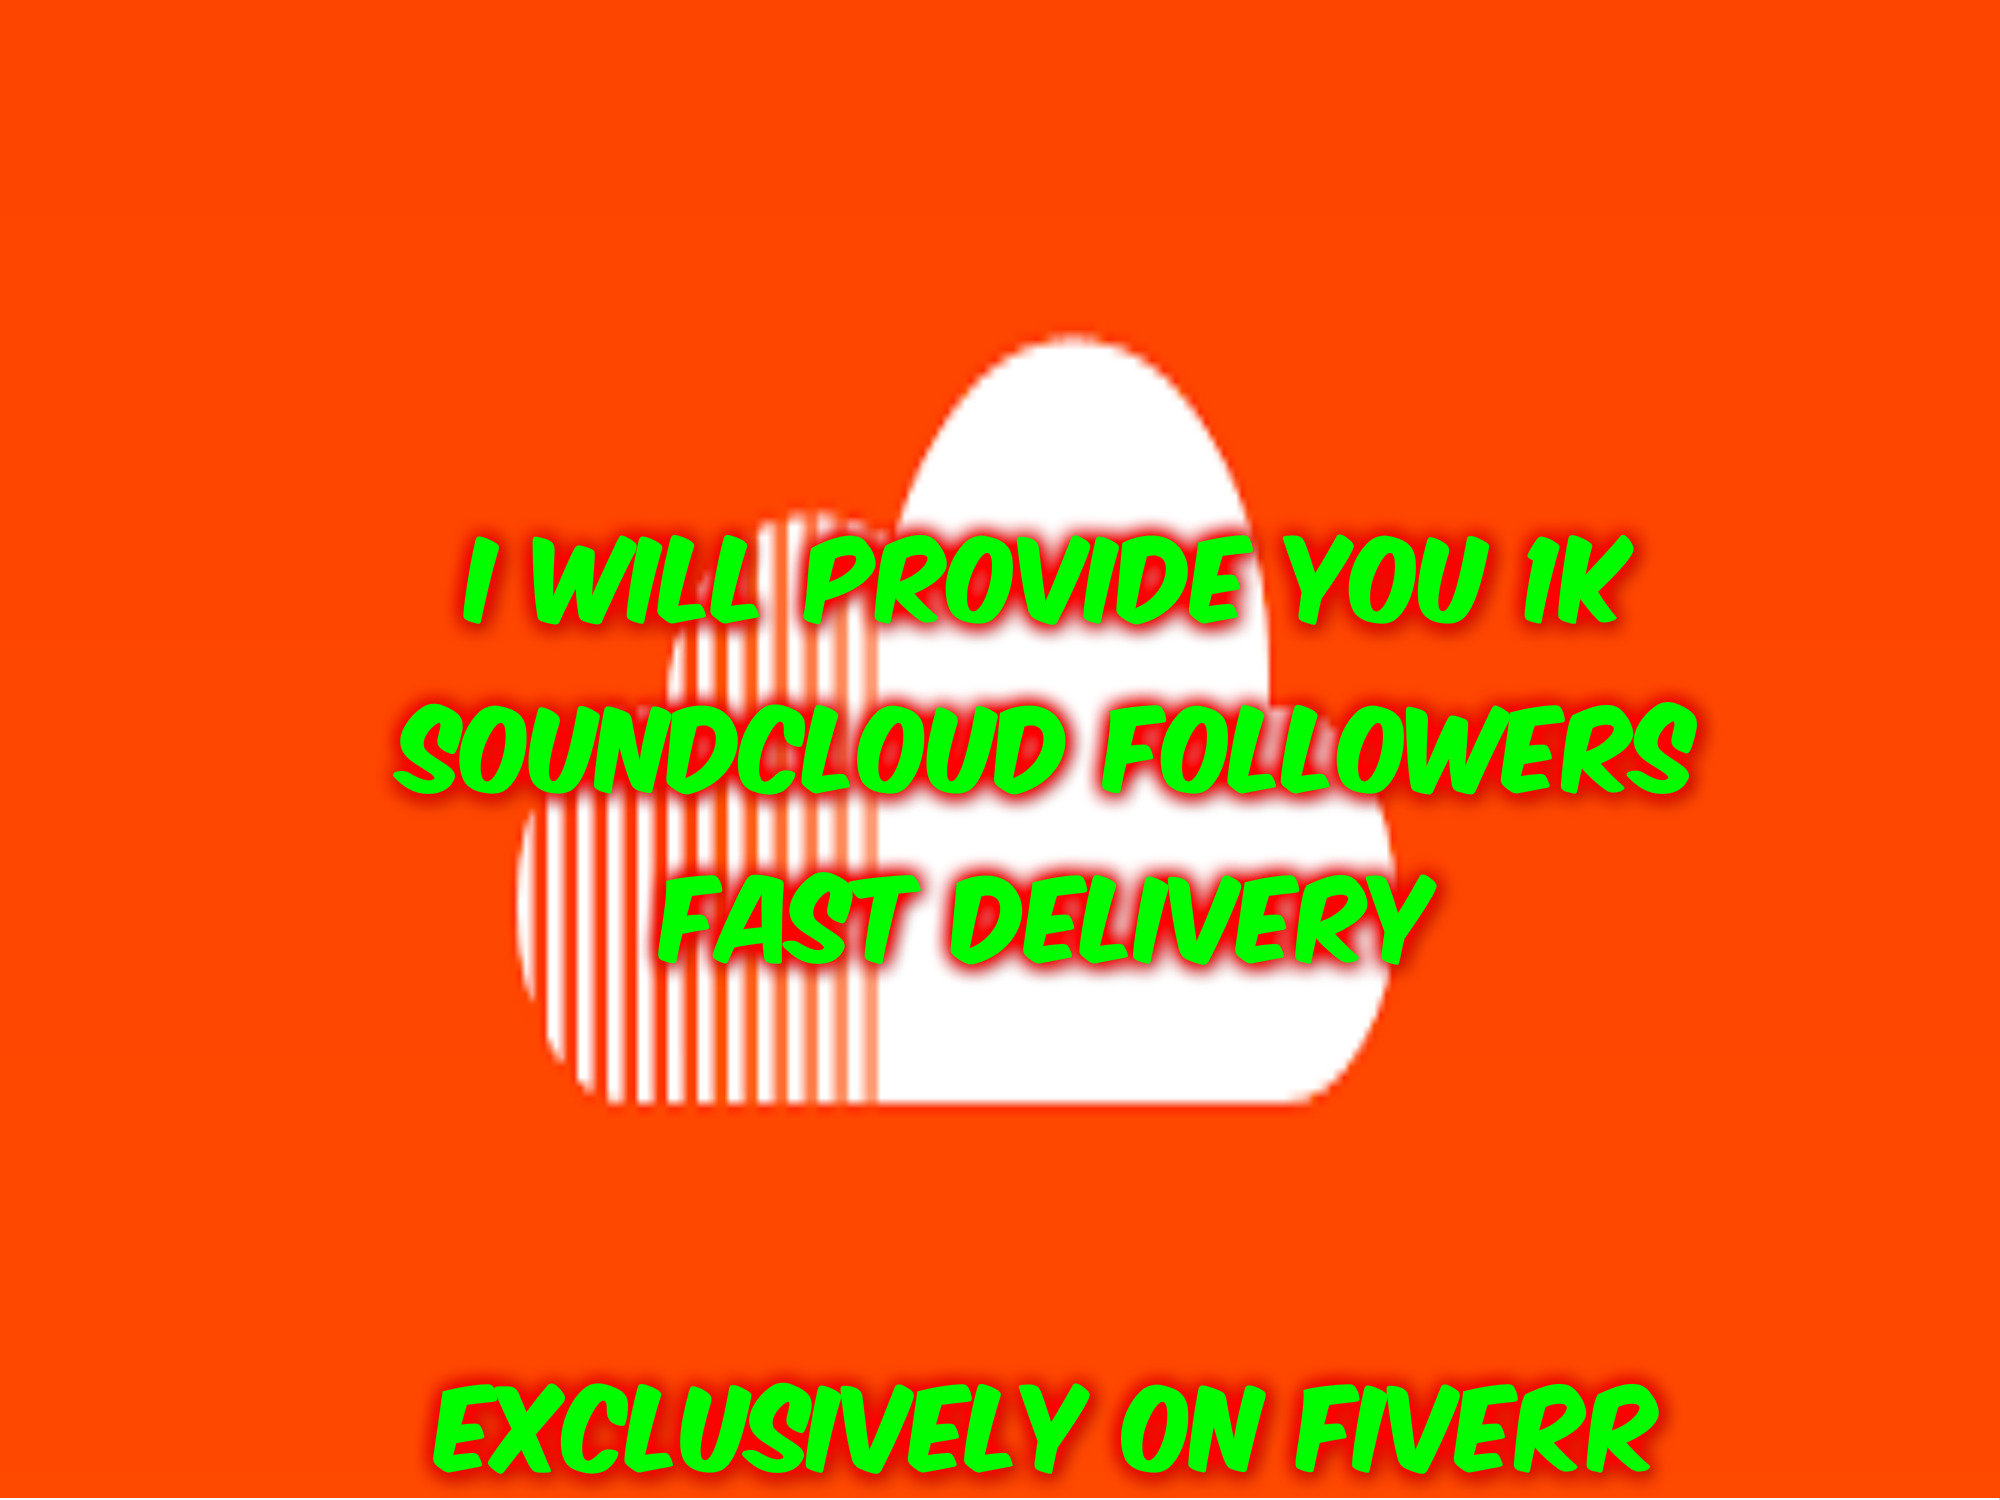 I will provide you 1000 soundcluod followers asap